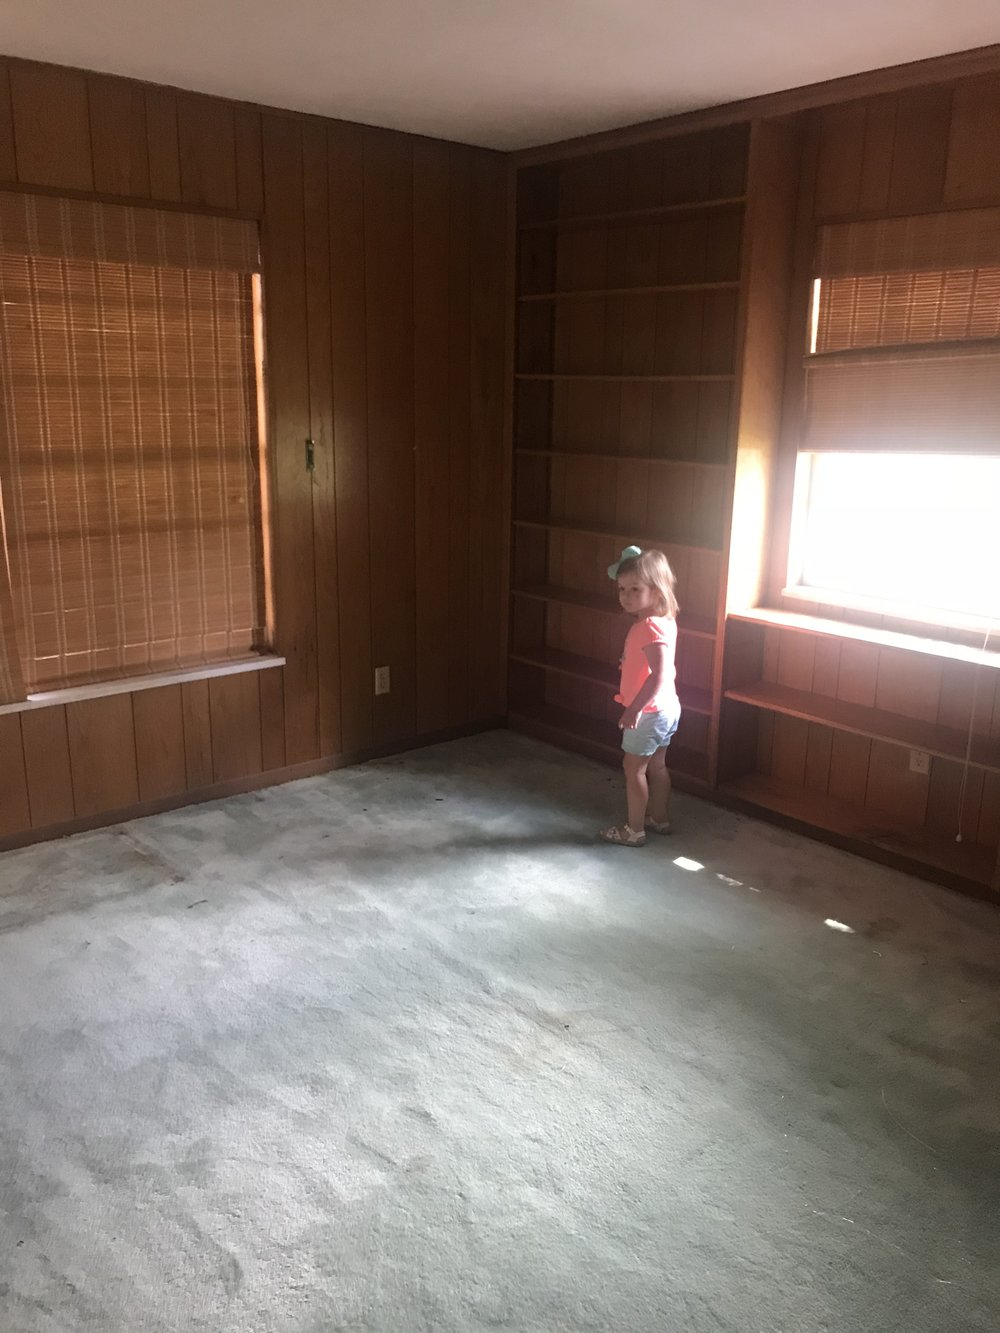 This is the current study that we are moving the master bedroom to. We are adding an additional window in this room to frame the bed in between along the wall Sutton is currently standing next to. Should we keep the wood paneling? Ok ok I'll stop with the rhetorical questions ;)